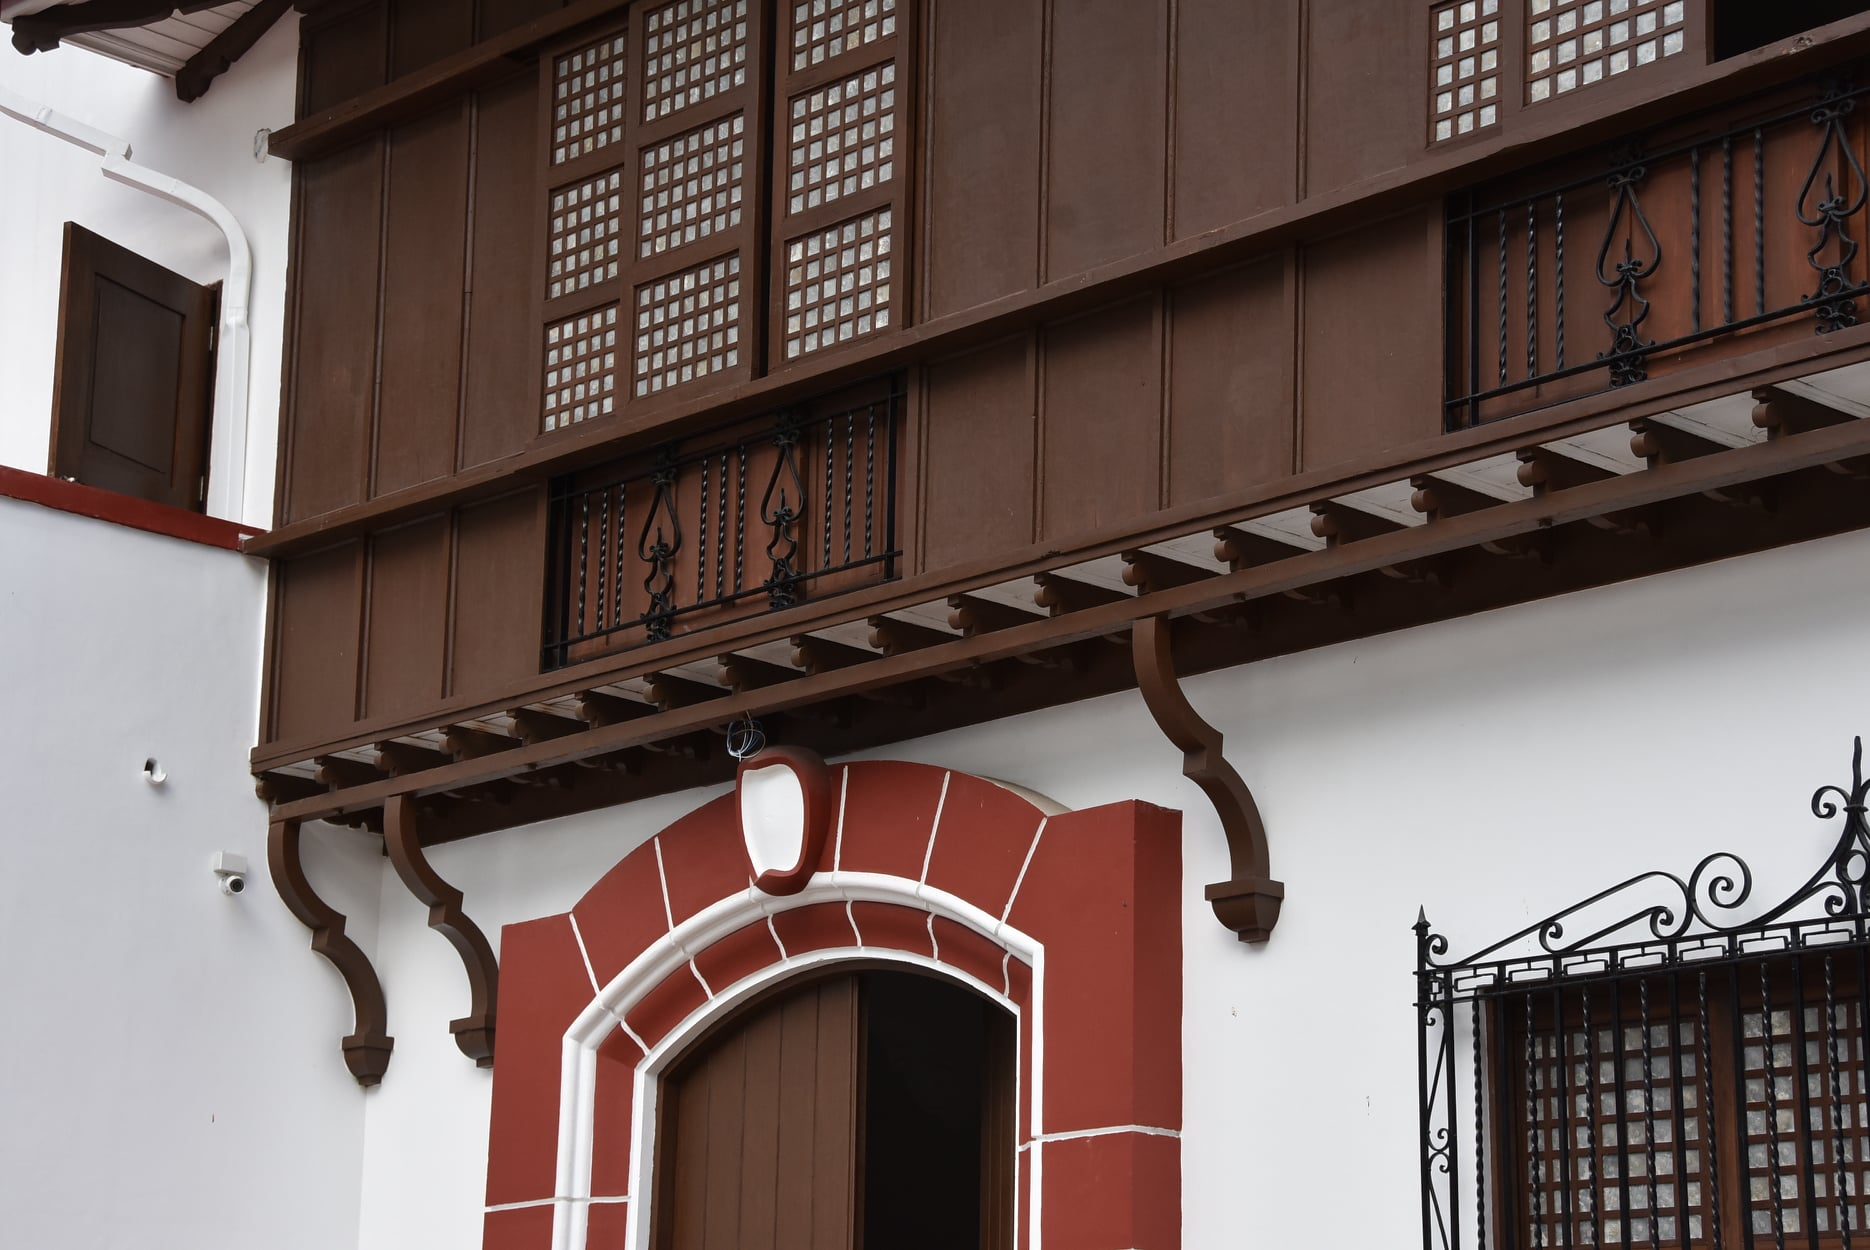 main entrance of the Presidencia showing intricate grillwork patterns and the overhanging wooden volada of the structure and capis shells on the windows